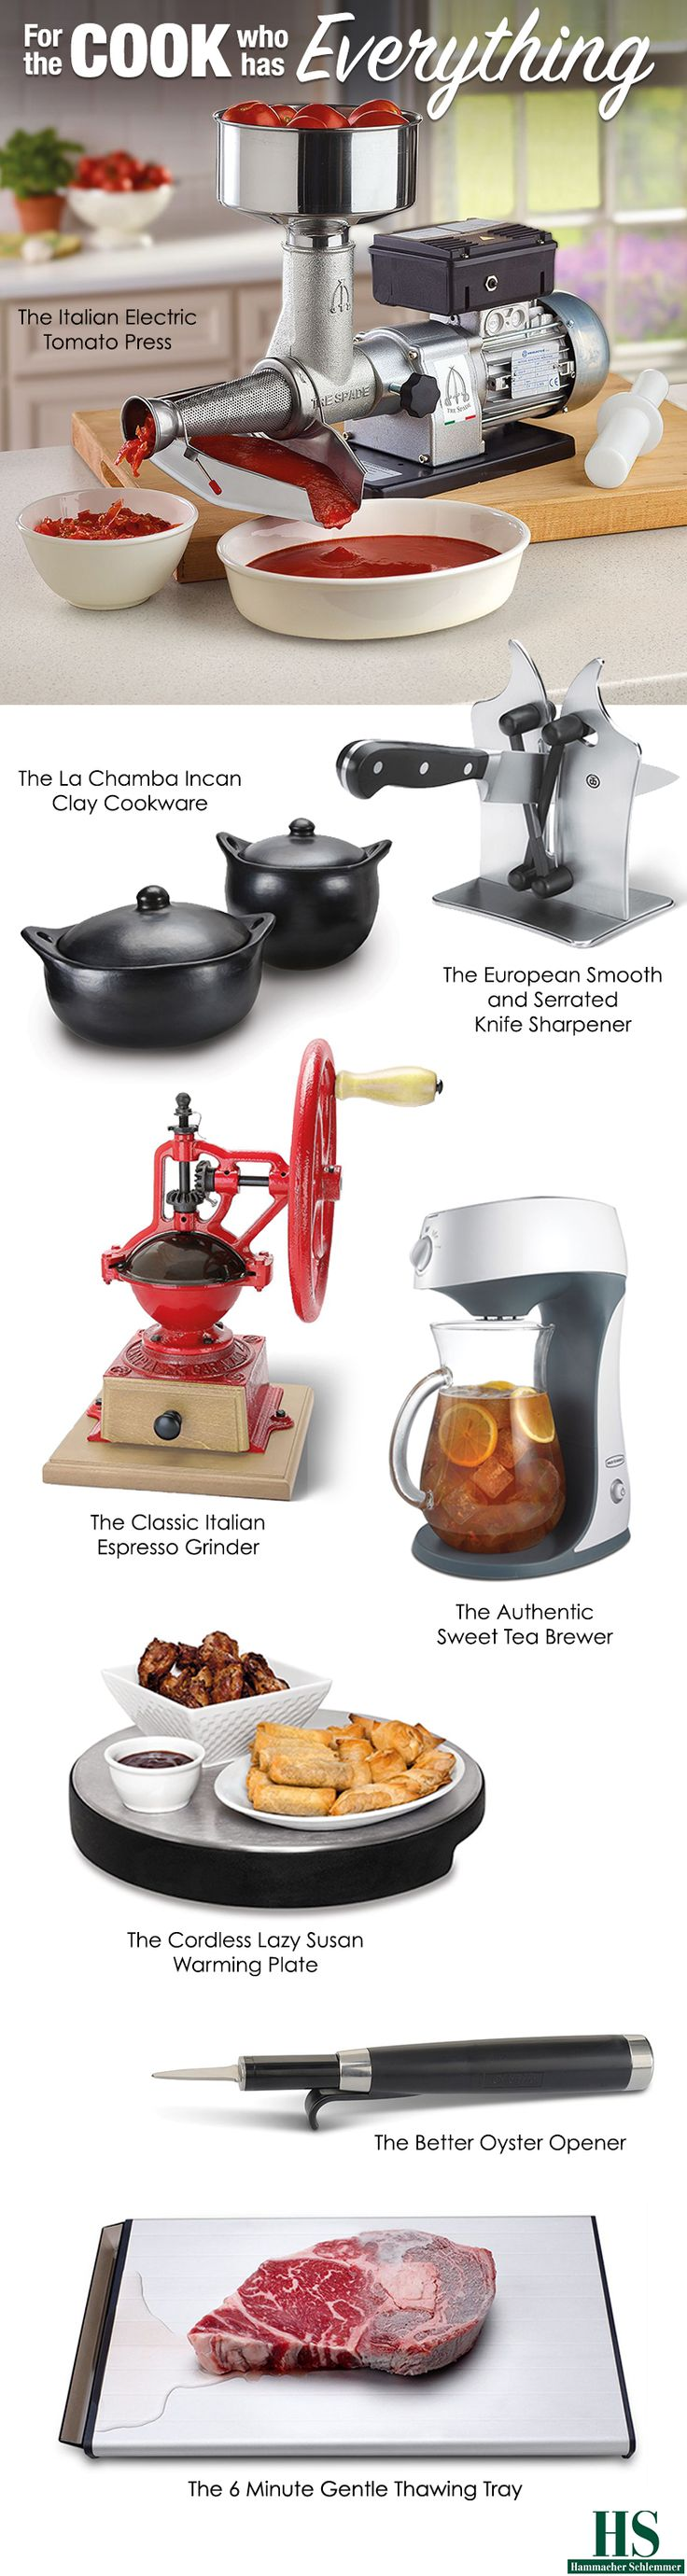 Shop for gifts for the cook who has everything.